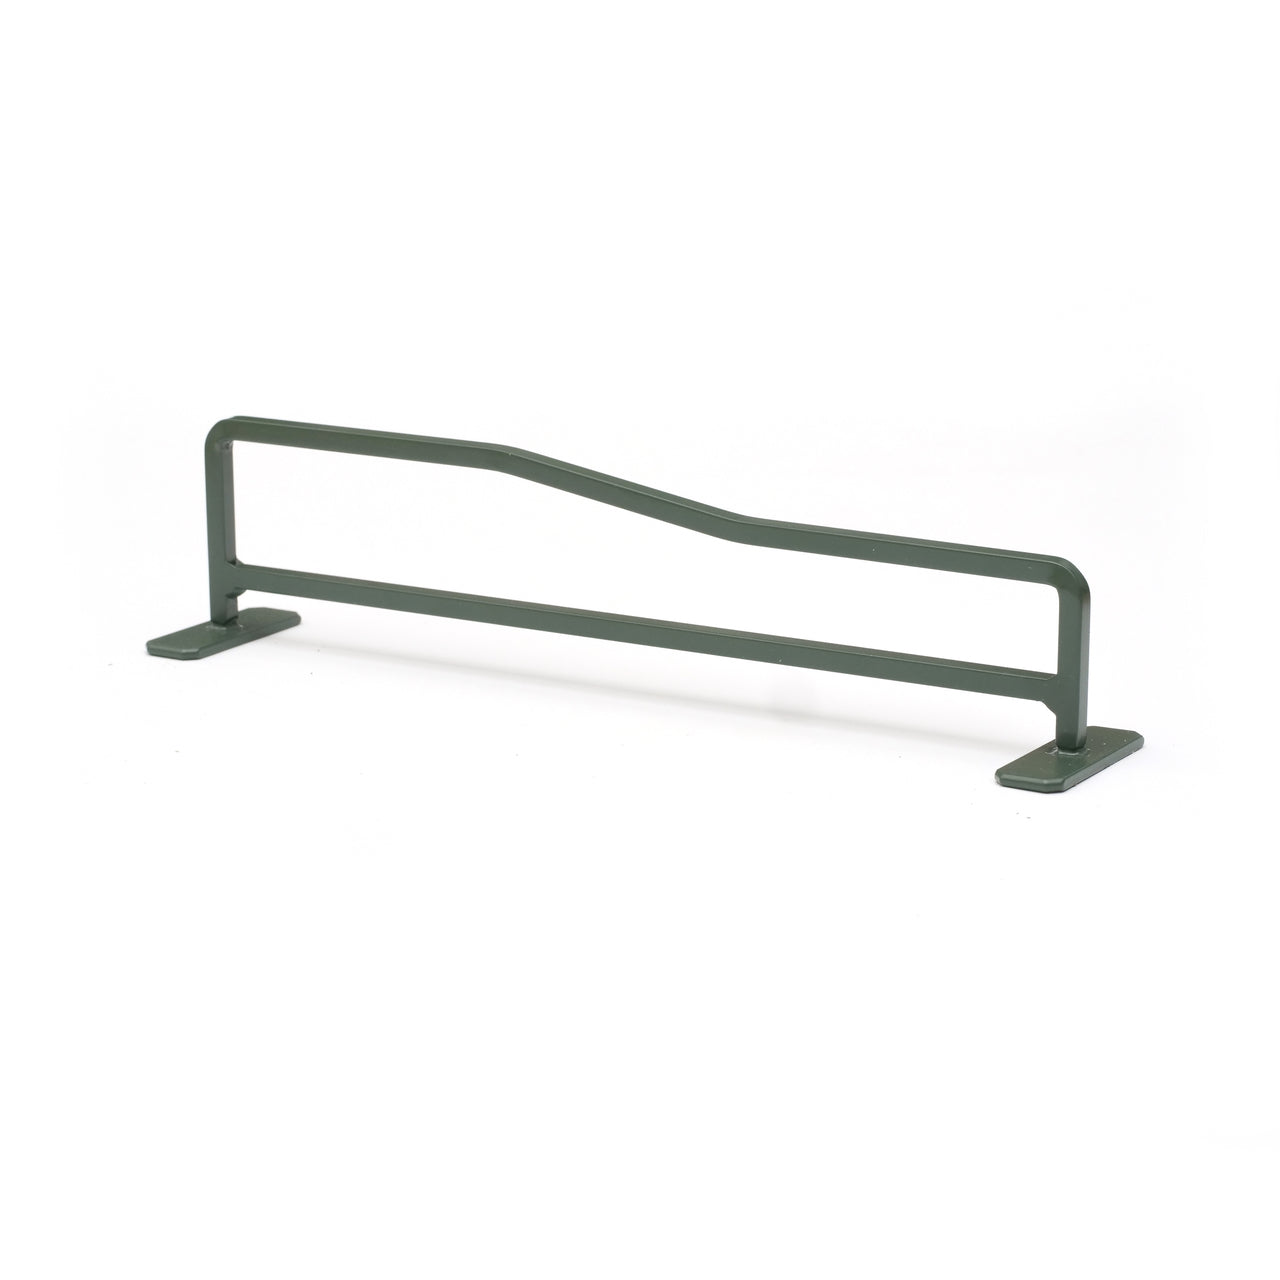 Airflo - Kinked Square Wrestling Rail